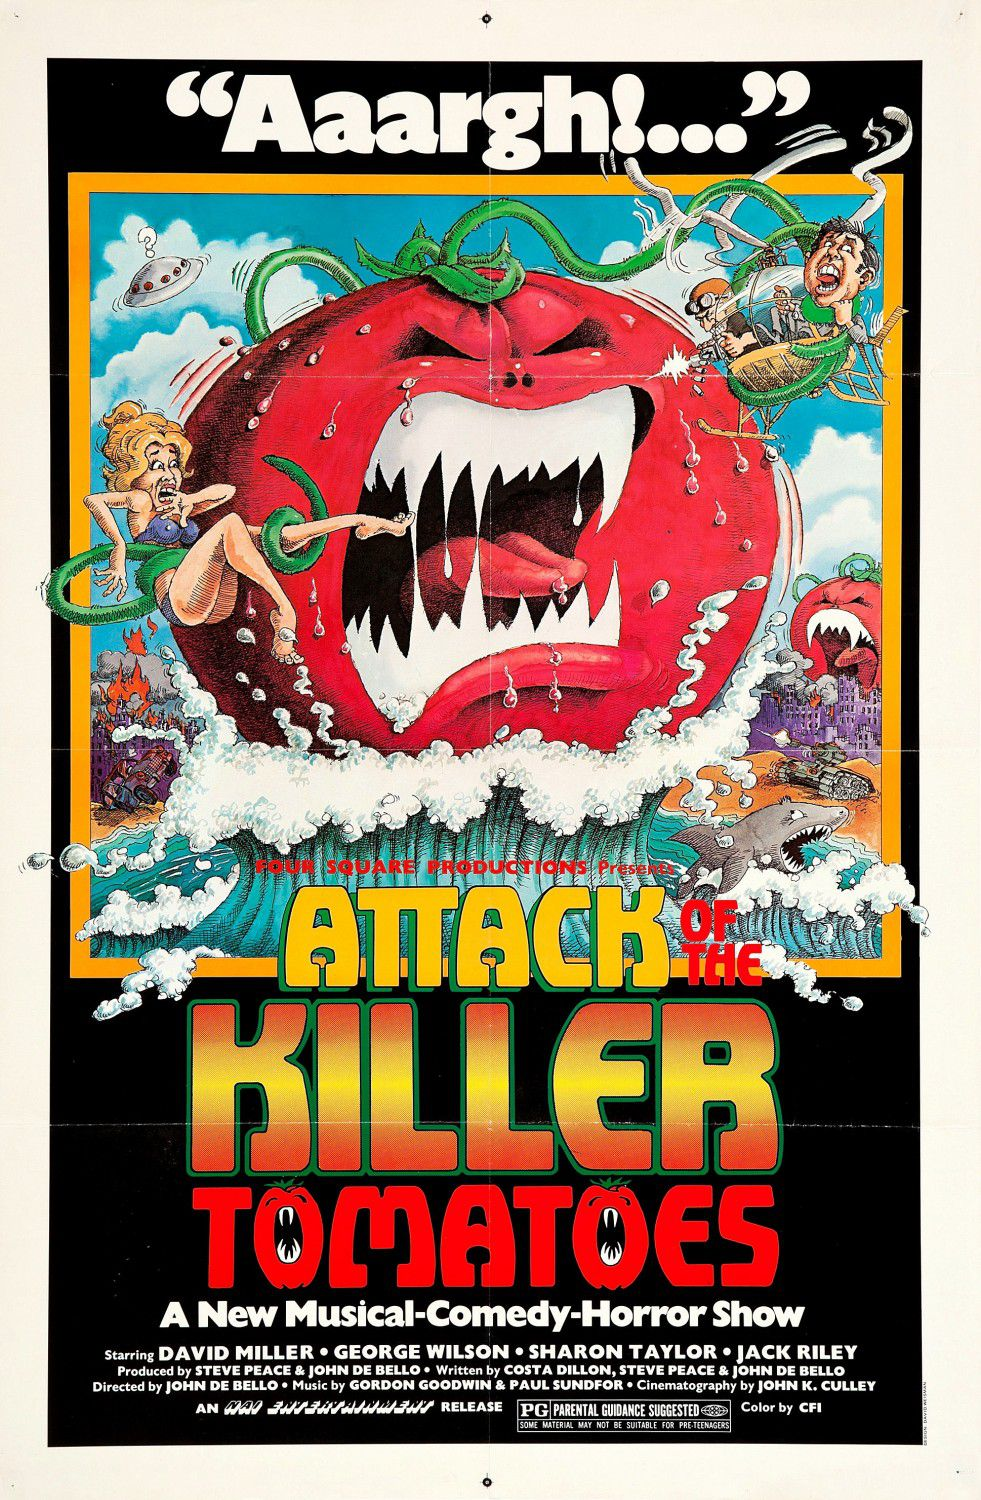 Attack of the Killer Tomatoes - Attacco dei Pomodori Assassini (1978) - film poster